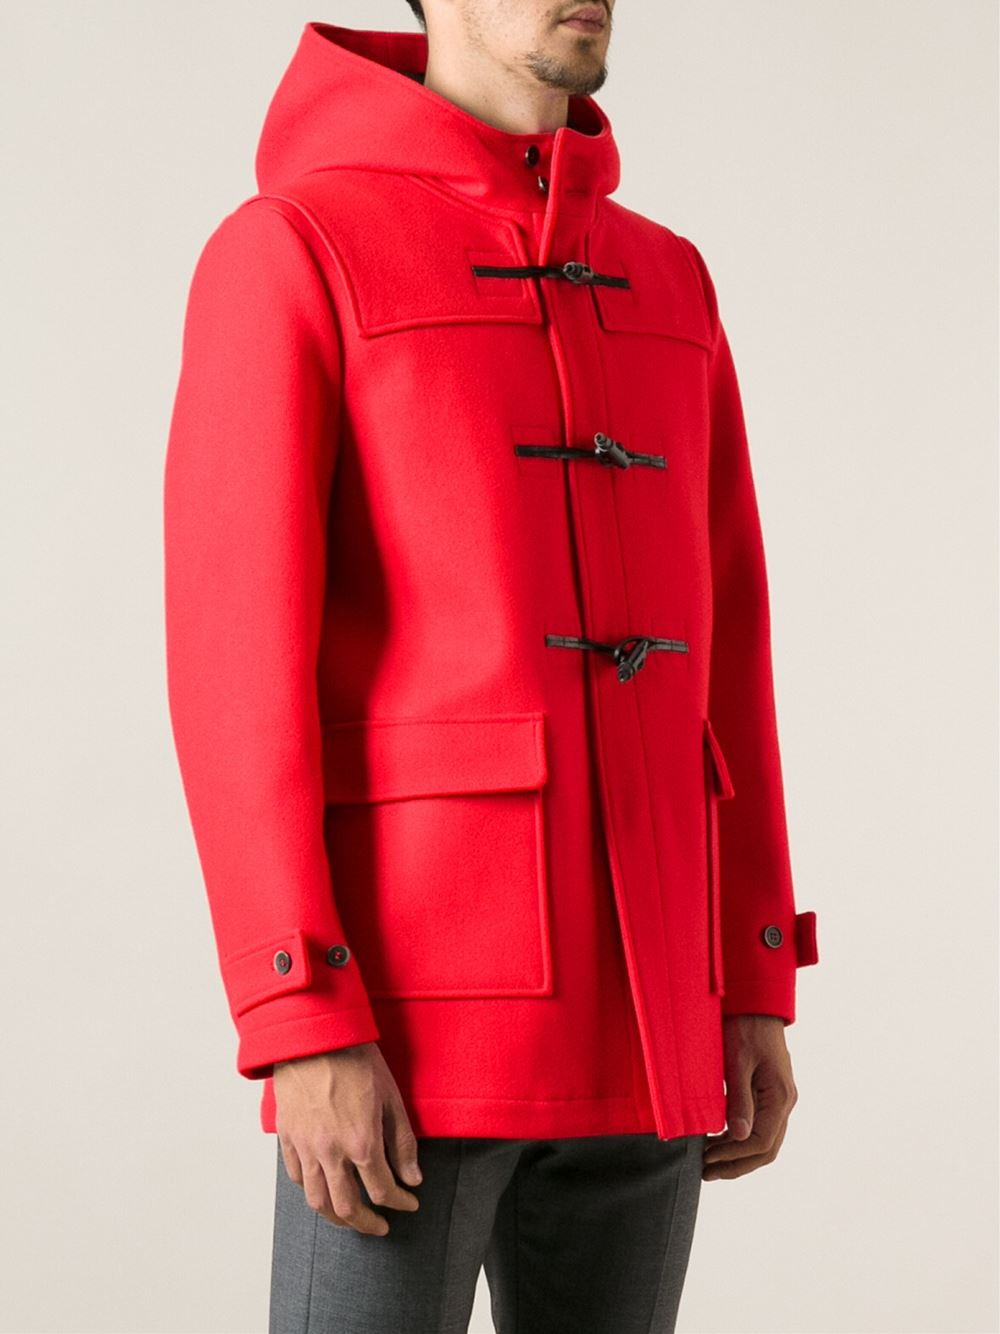 Msgm Classic Duffle Coat in Red for Men | Lyst